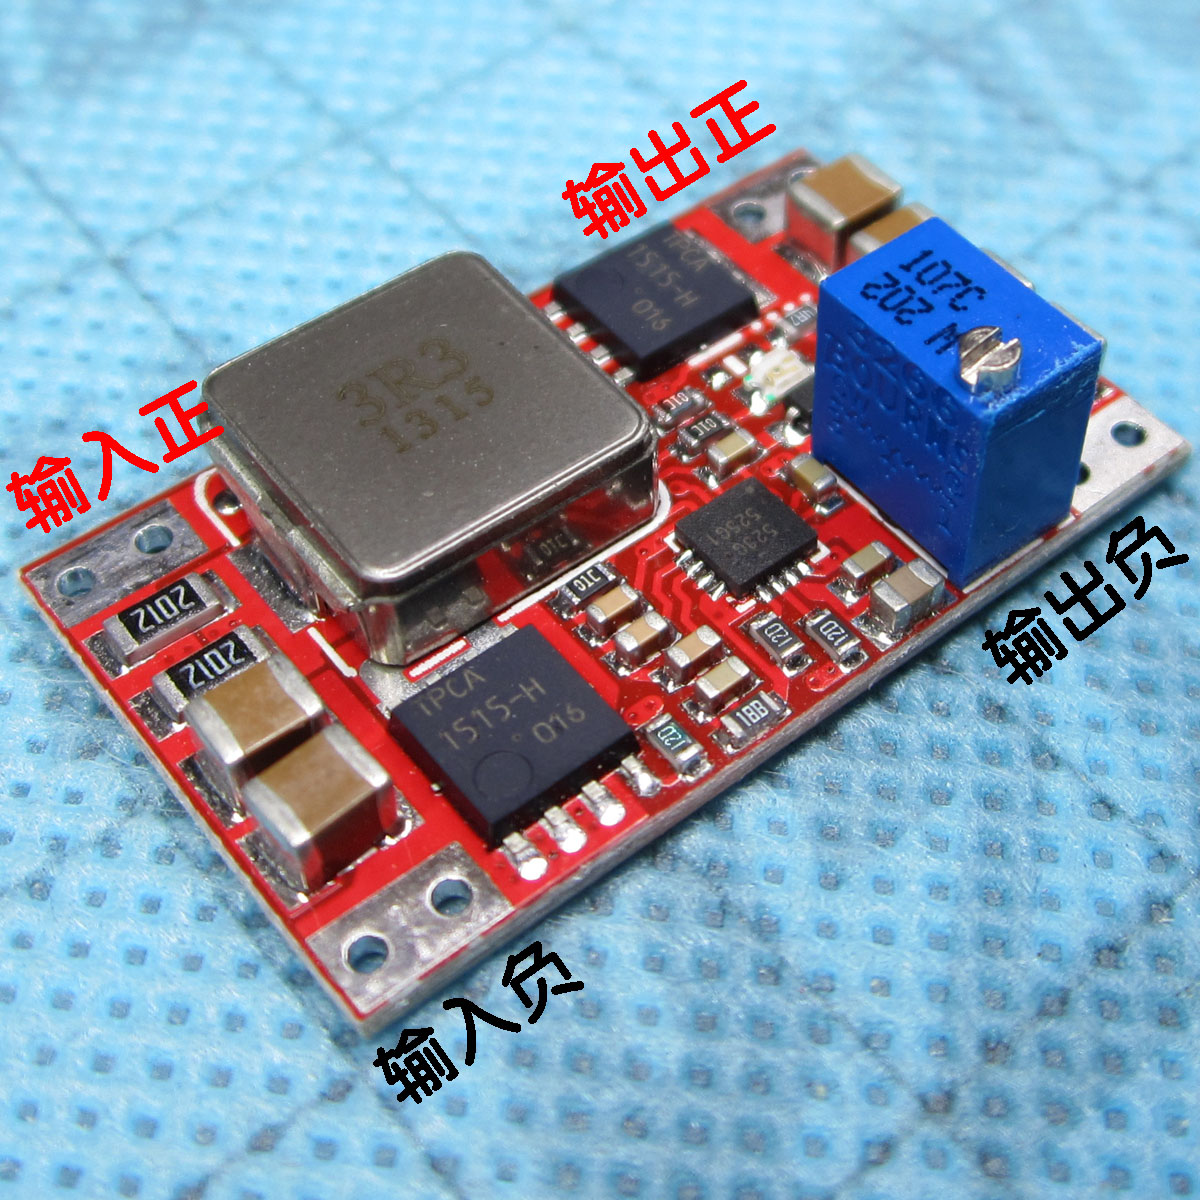 5V 12V 18V Mini 3786 Notebook Boost Board Mobile Power Boost Synchronous Rectifier High Efficiency